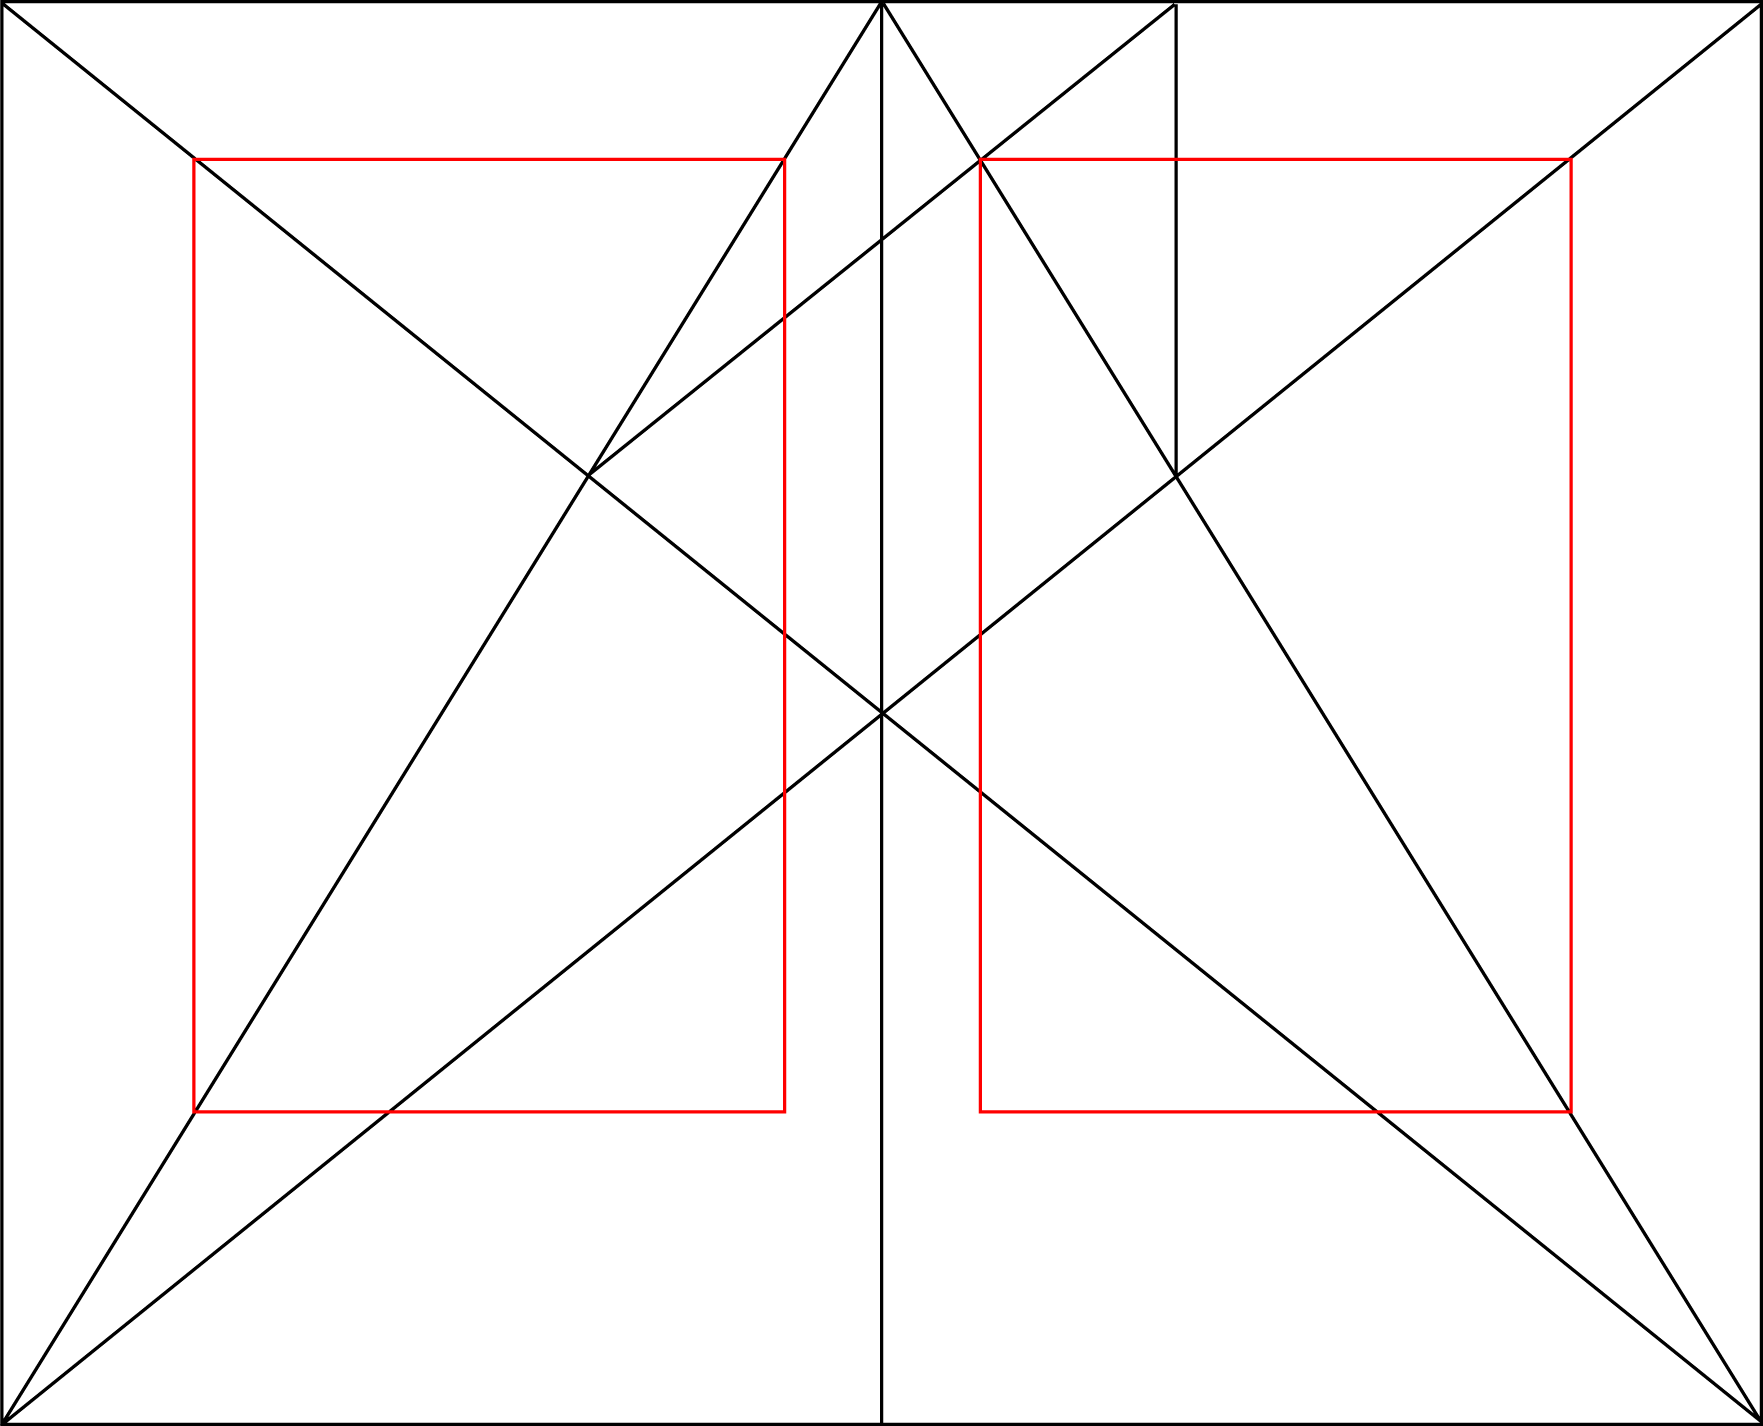 Golden ratio business card grid google search grids pinterest golden ratio business card grid google search colourmoves Images